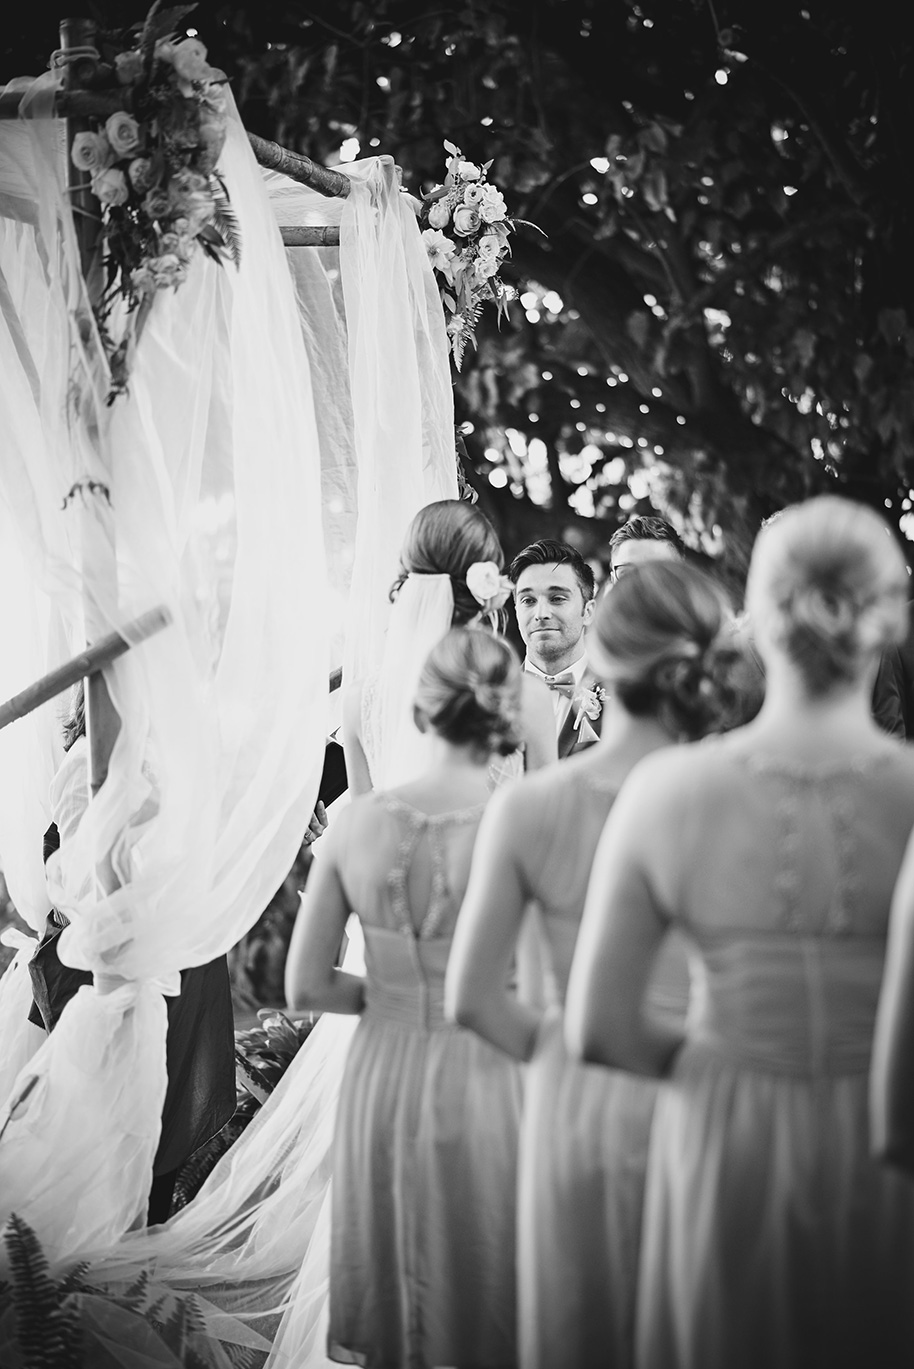 Hawaii-Wedding-Stephen-Ludwig-032916-11